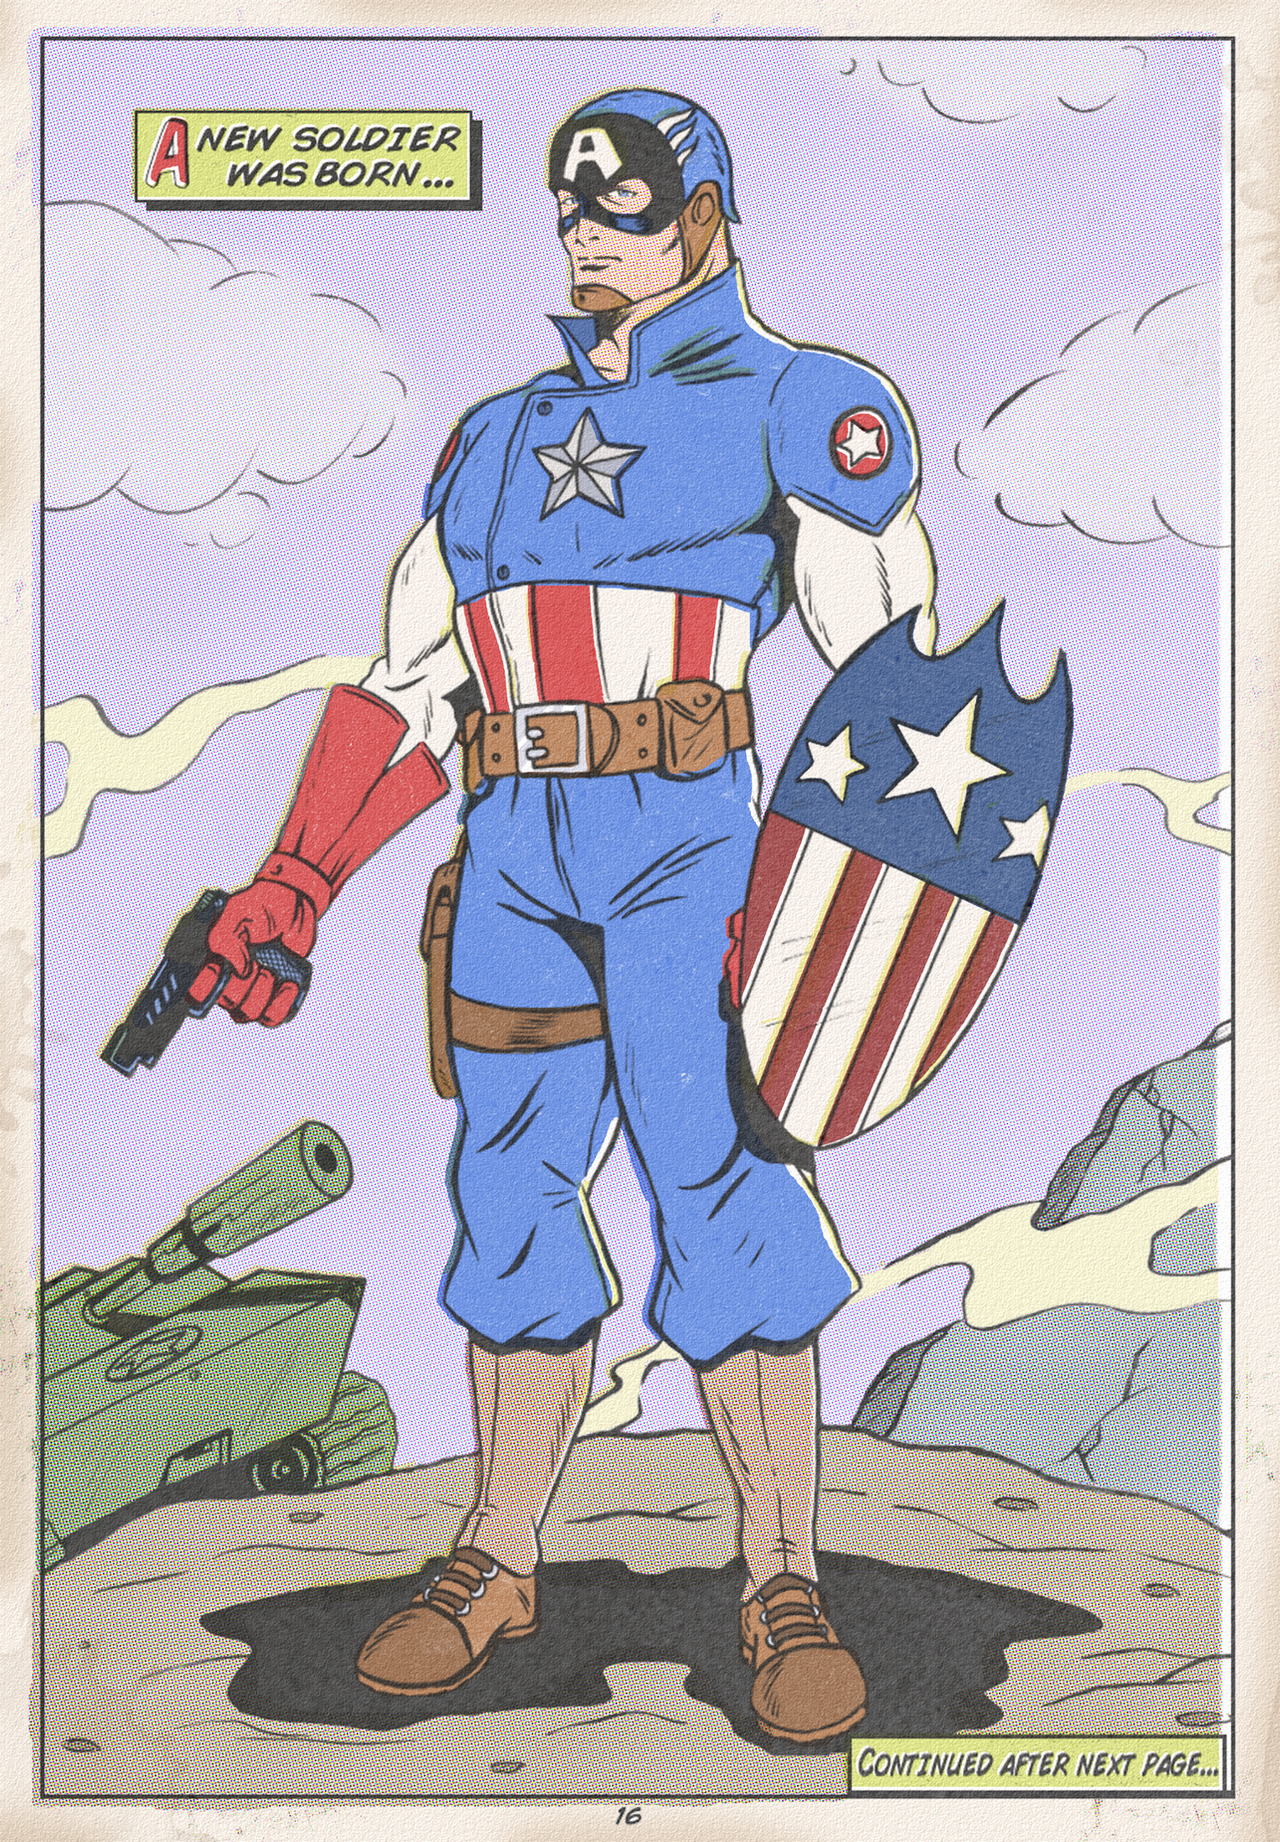 MY OWN DESIGN OF CAPTAIN AMERICA by paintmarvels